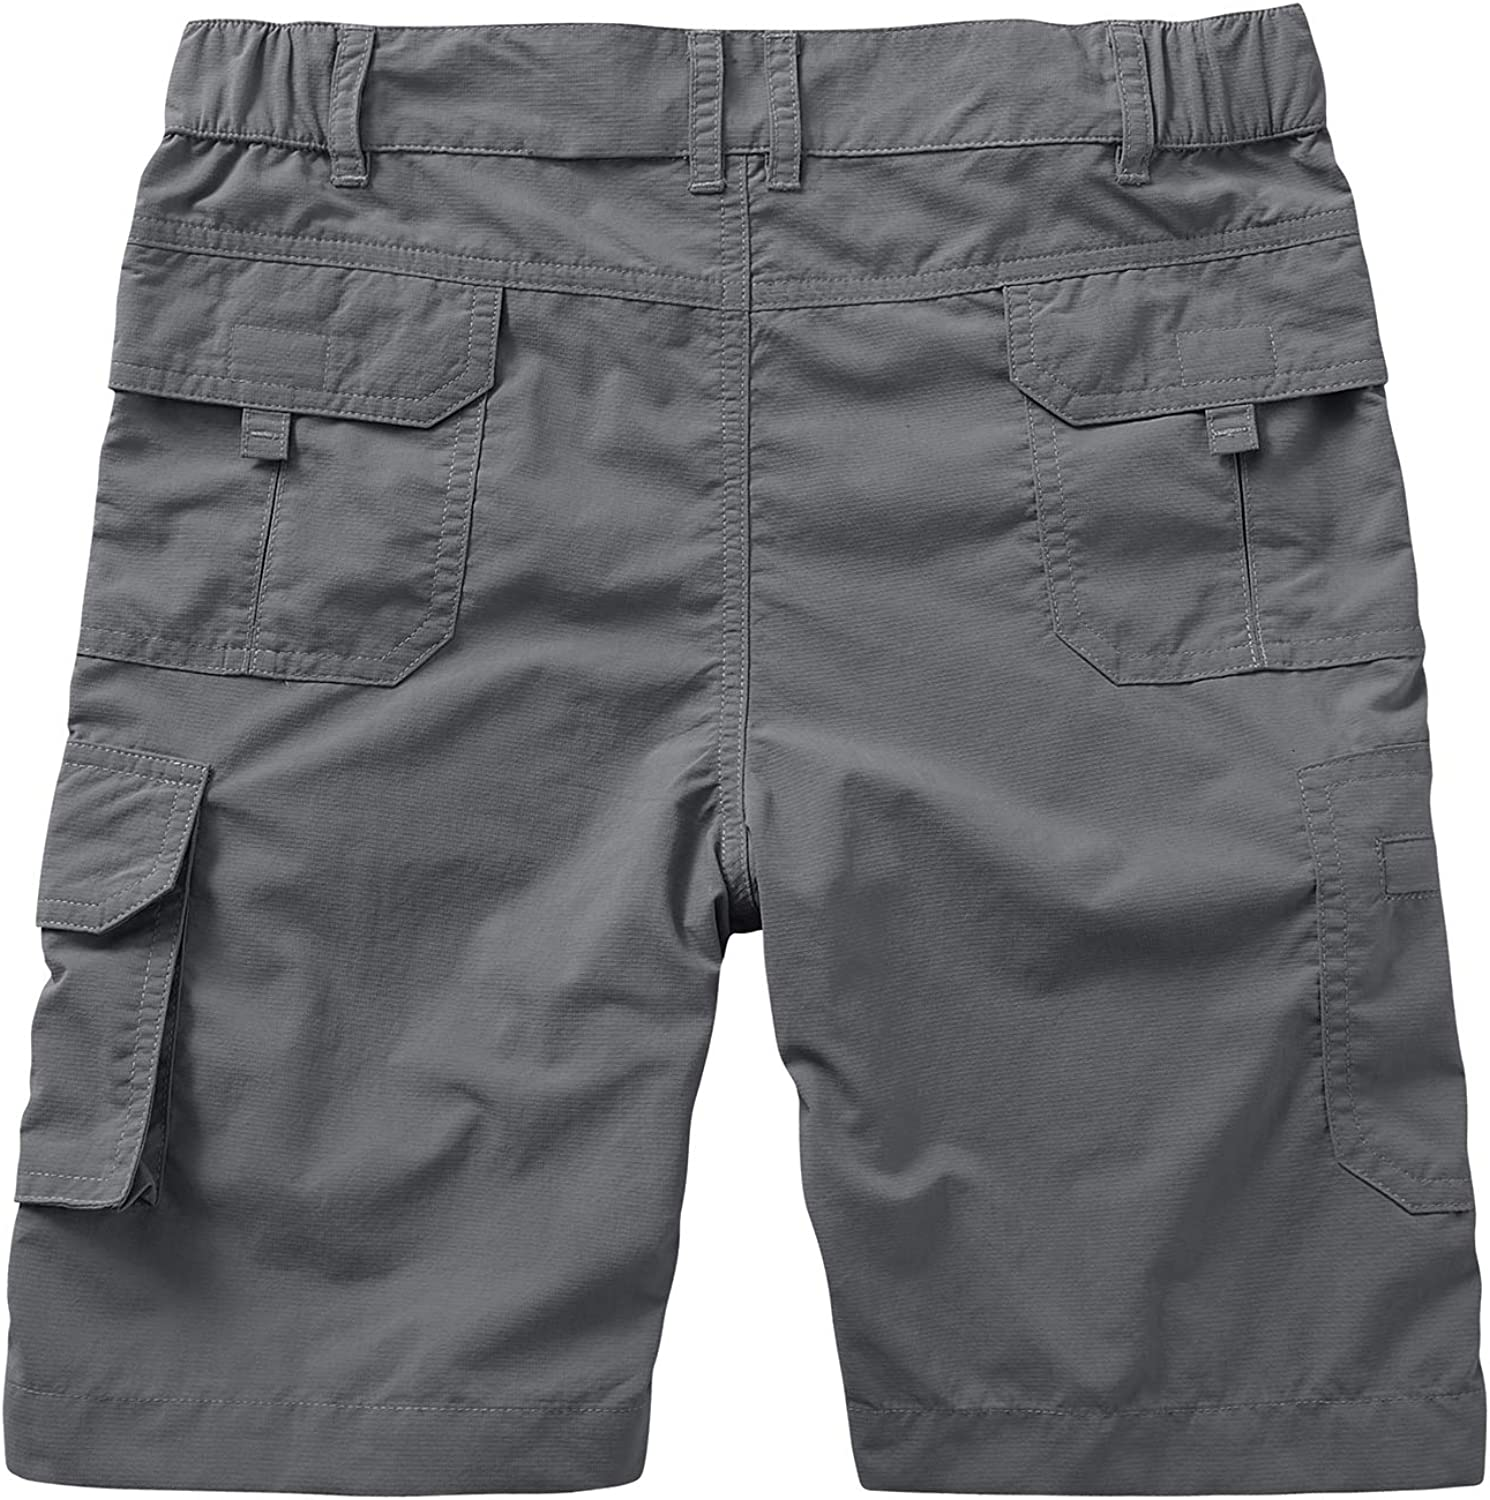 Lightweight Cargo Tatical Zipper Pockets Camping Travel Shorts Kids Boys Youth Hiking Casual Quick Dry Shorts